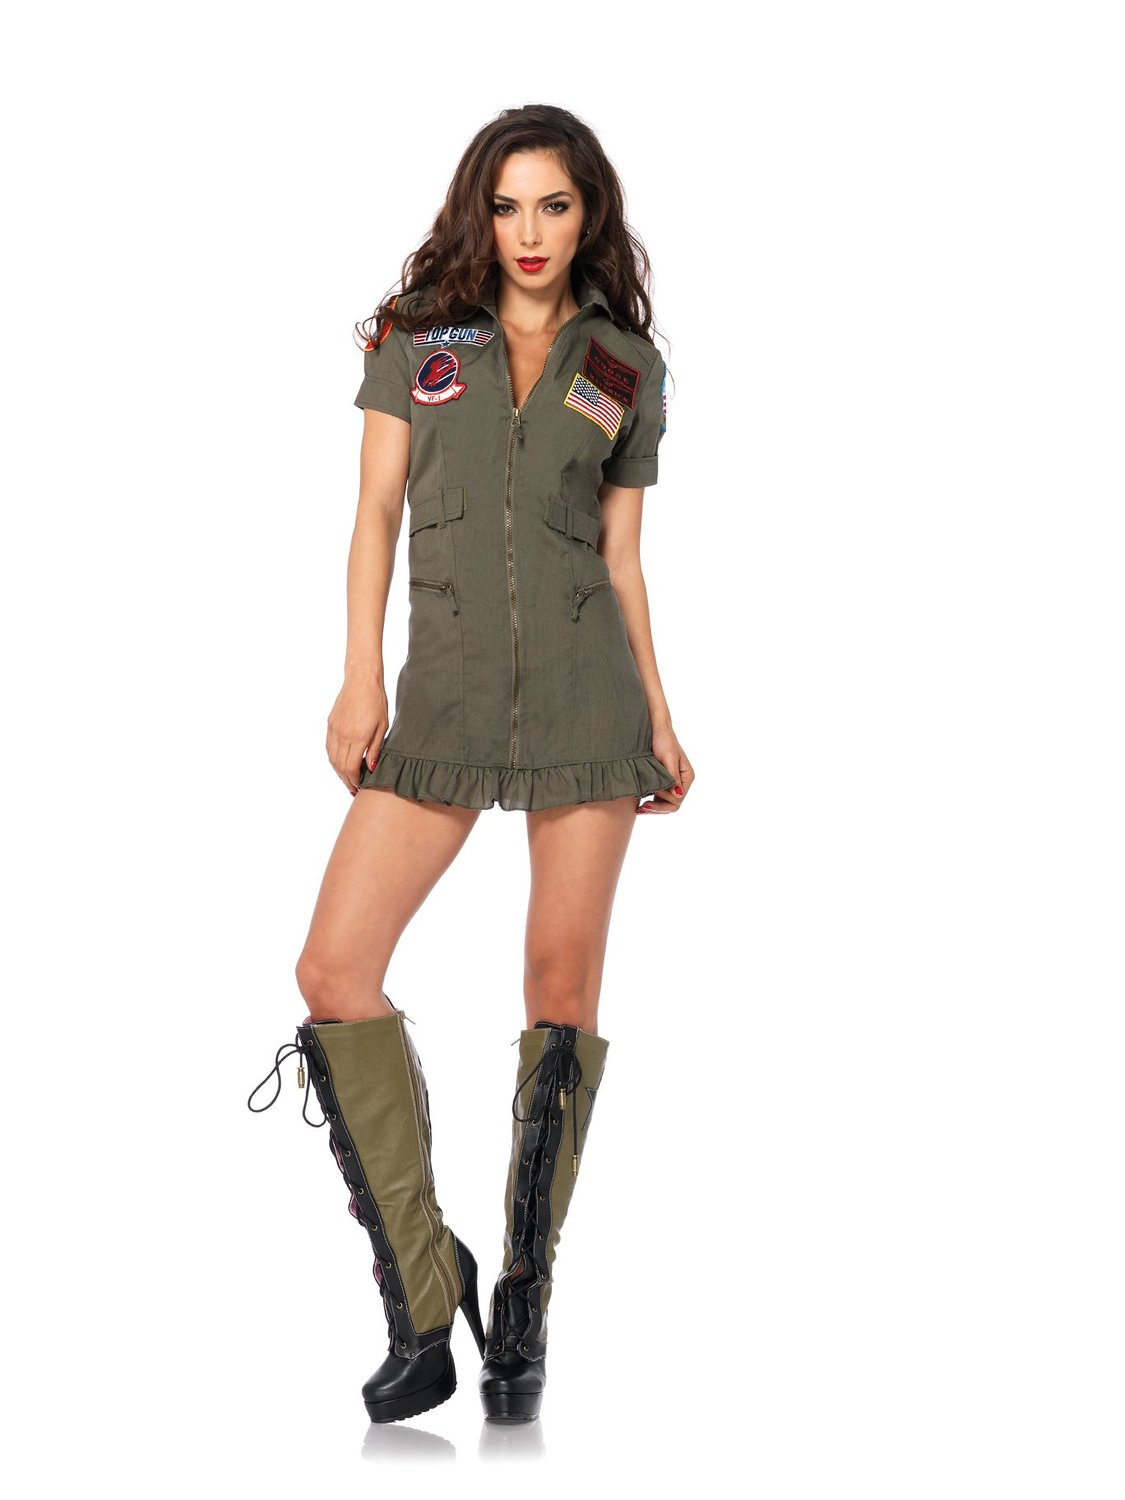 Top Gun Woman s Flight Dress Uniform  49.99 7d65324f2